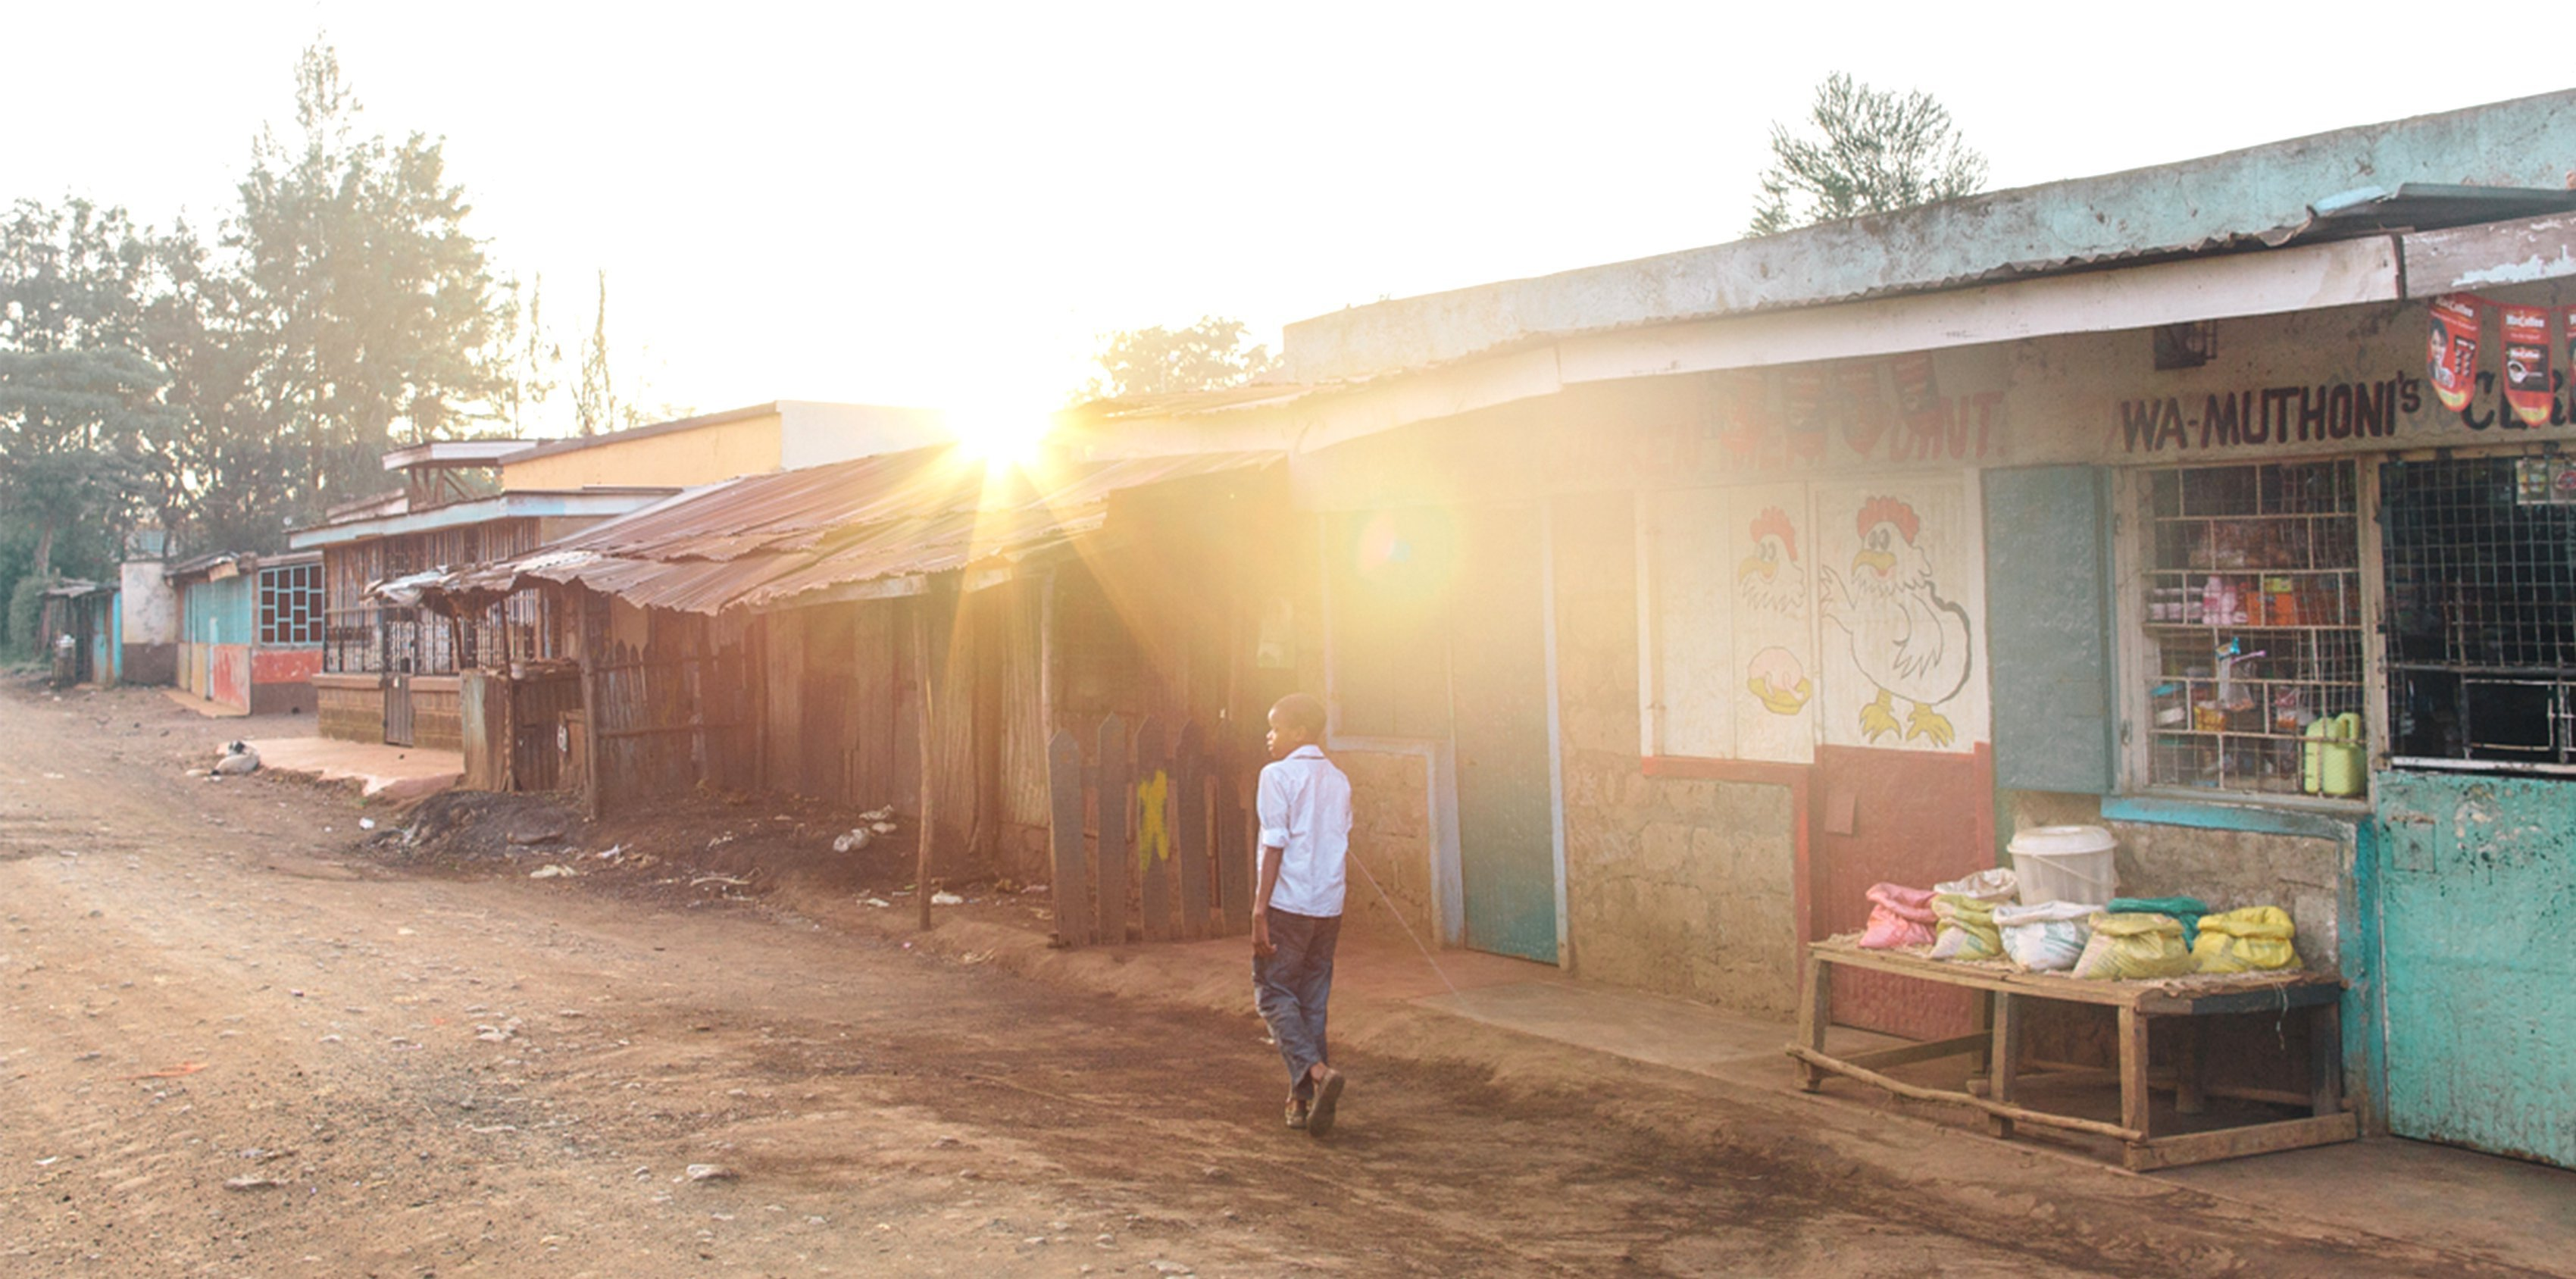 Boy walks street in Kirigu, Kenya